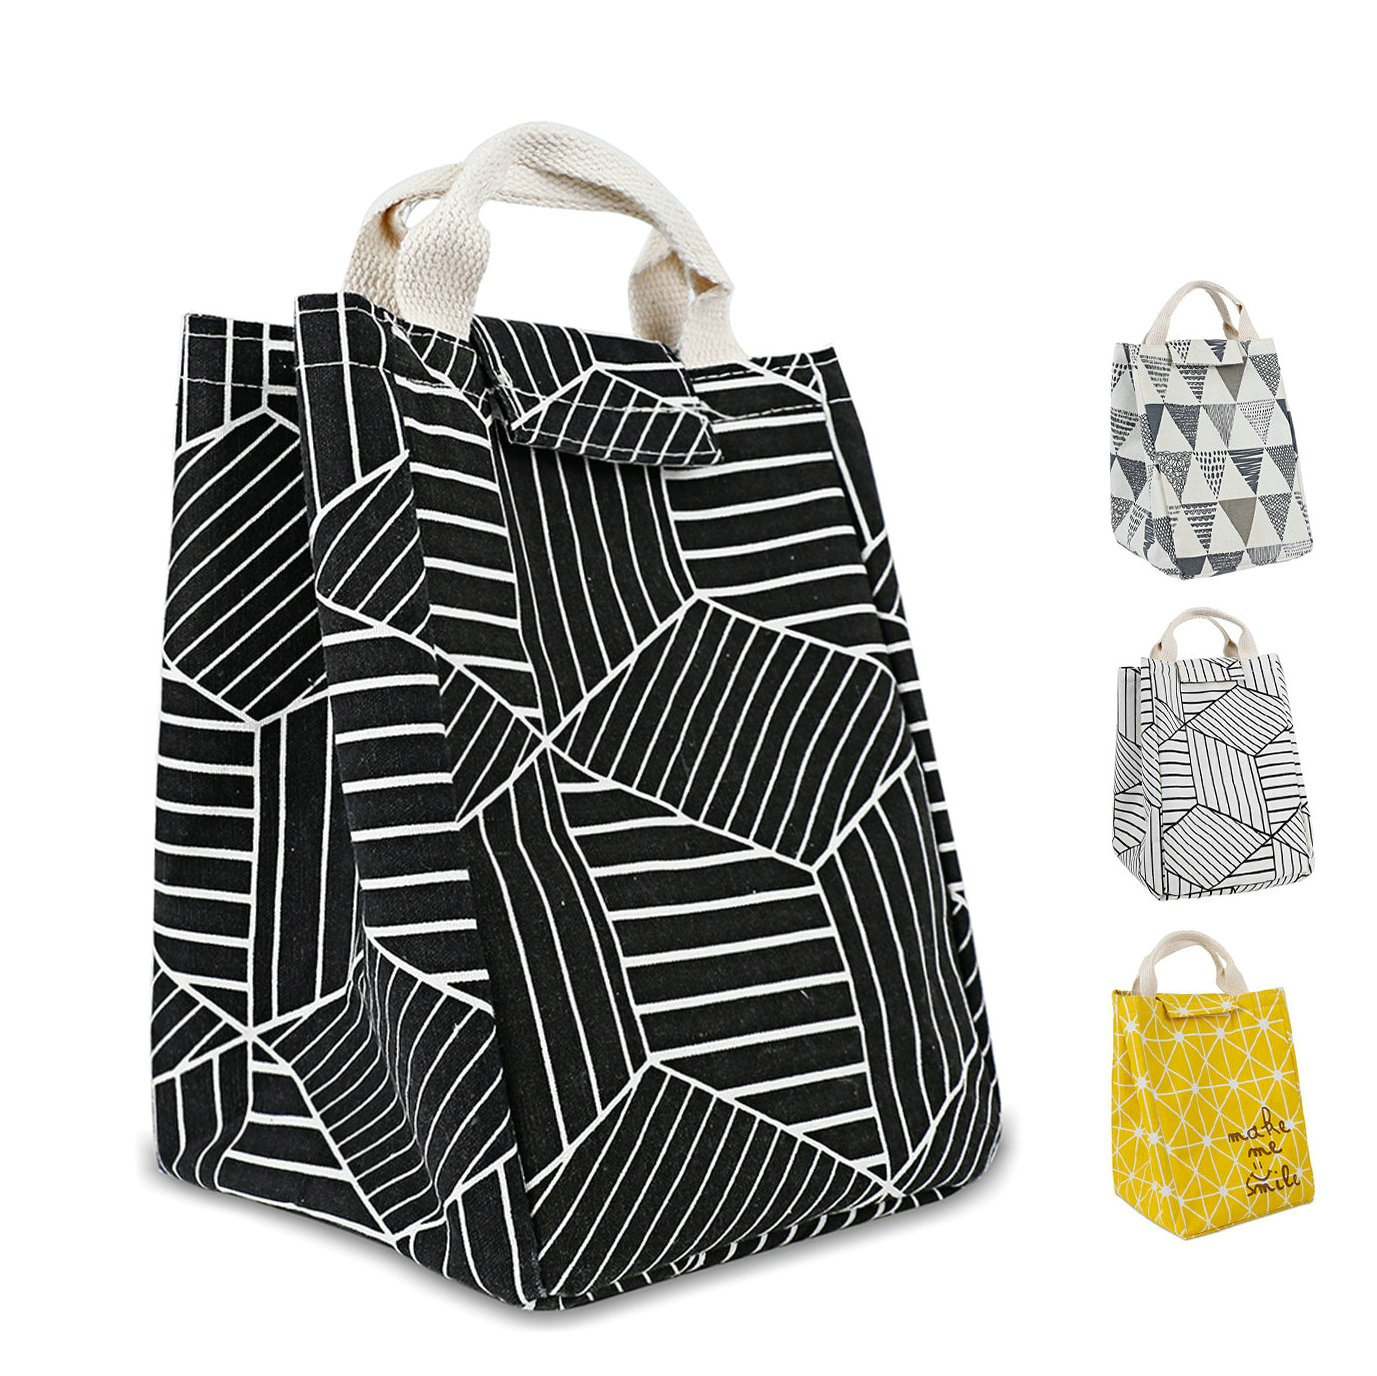 HOMESPON Reusable Lunch Bags Printed Canvas Fabric with Insulated Waterproof Aluminum Foil, Lunch Box for Women, Kids, Students (Geometric Pattern-Black)